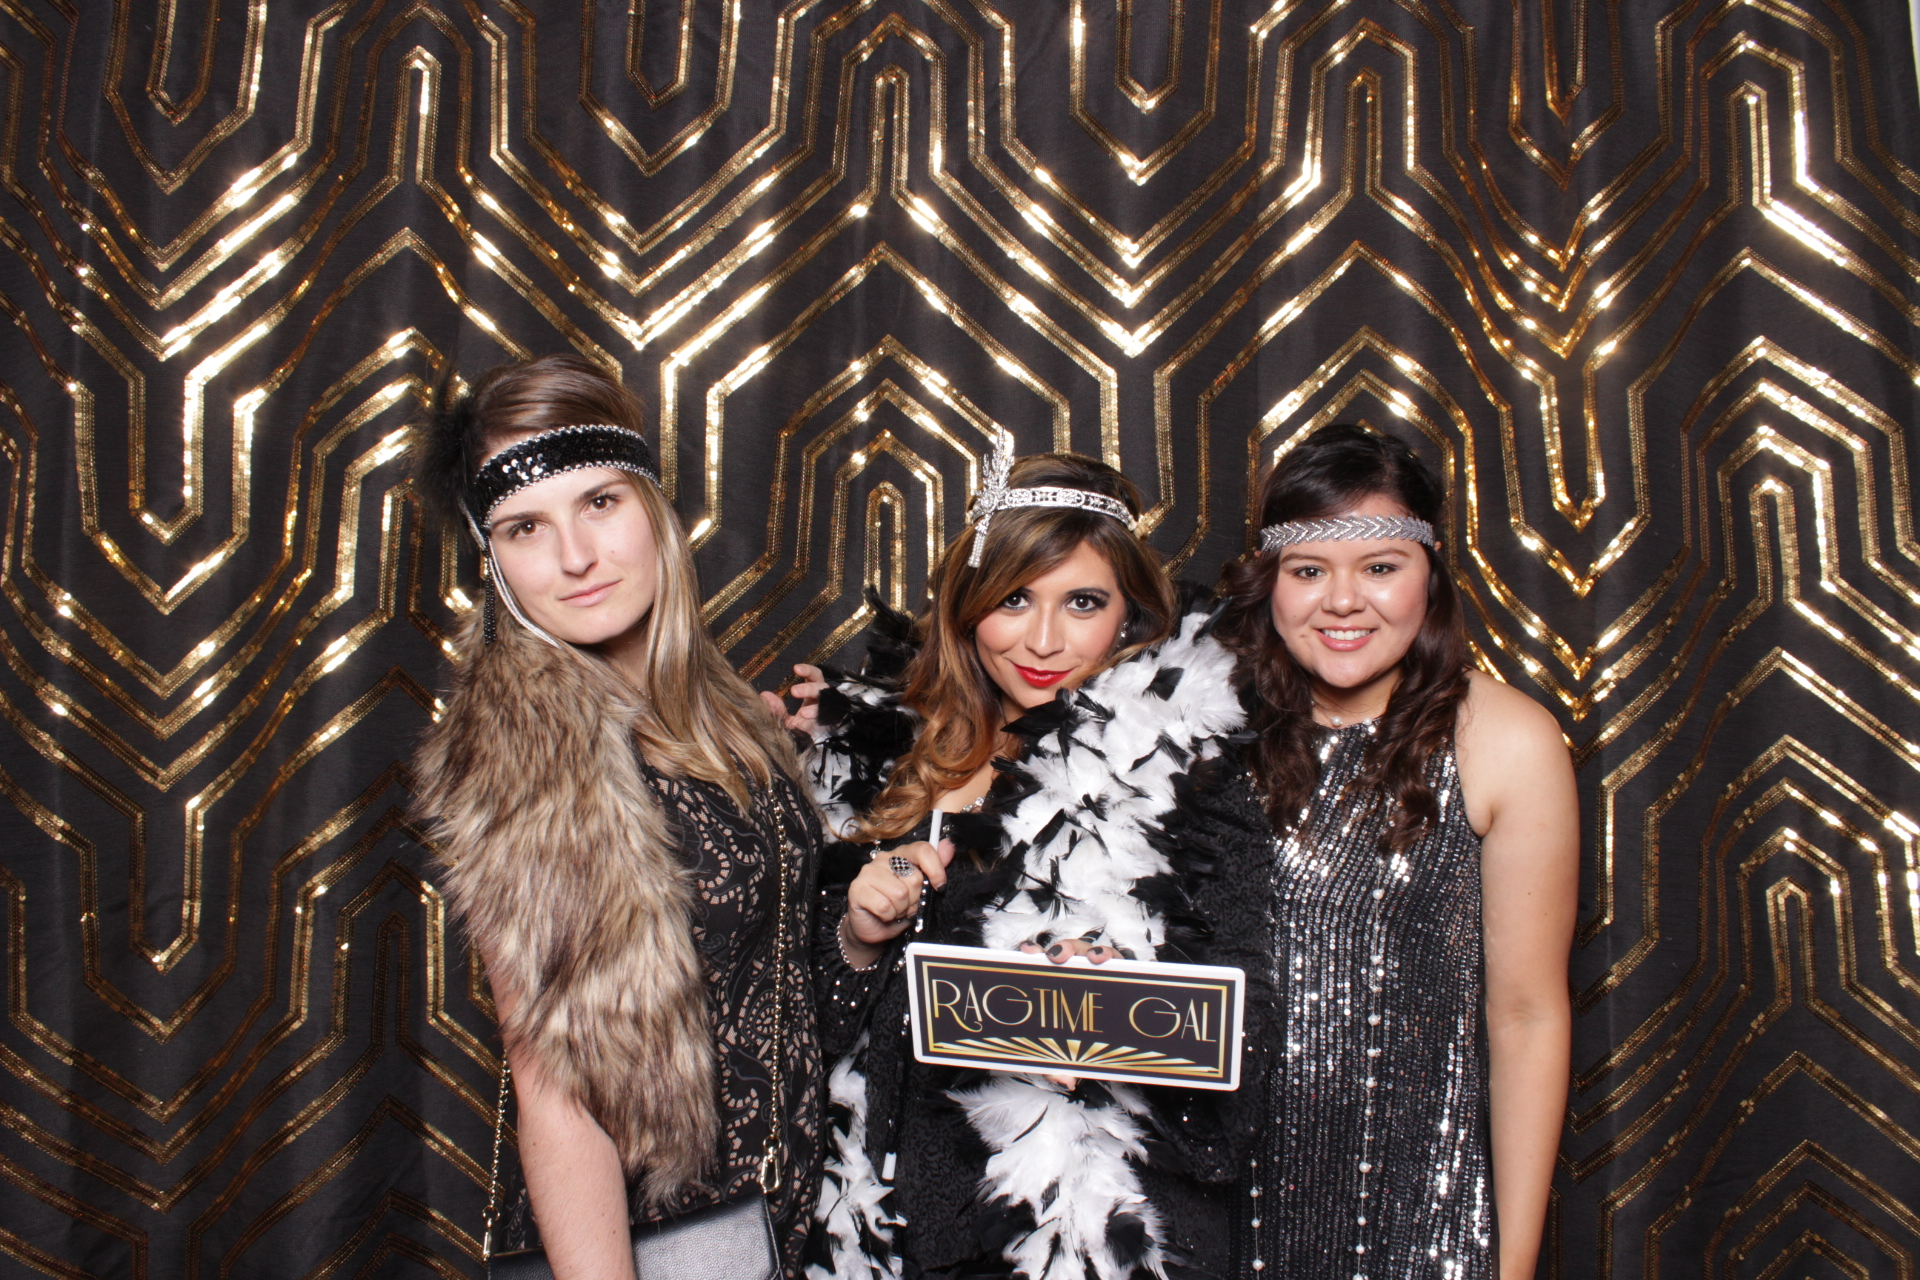 2016-10-21-80781b-jpg-mad-mad-photo-booths-gatsby-brooklynite